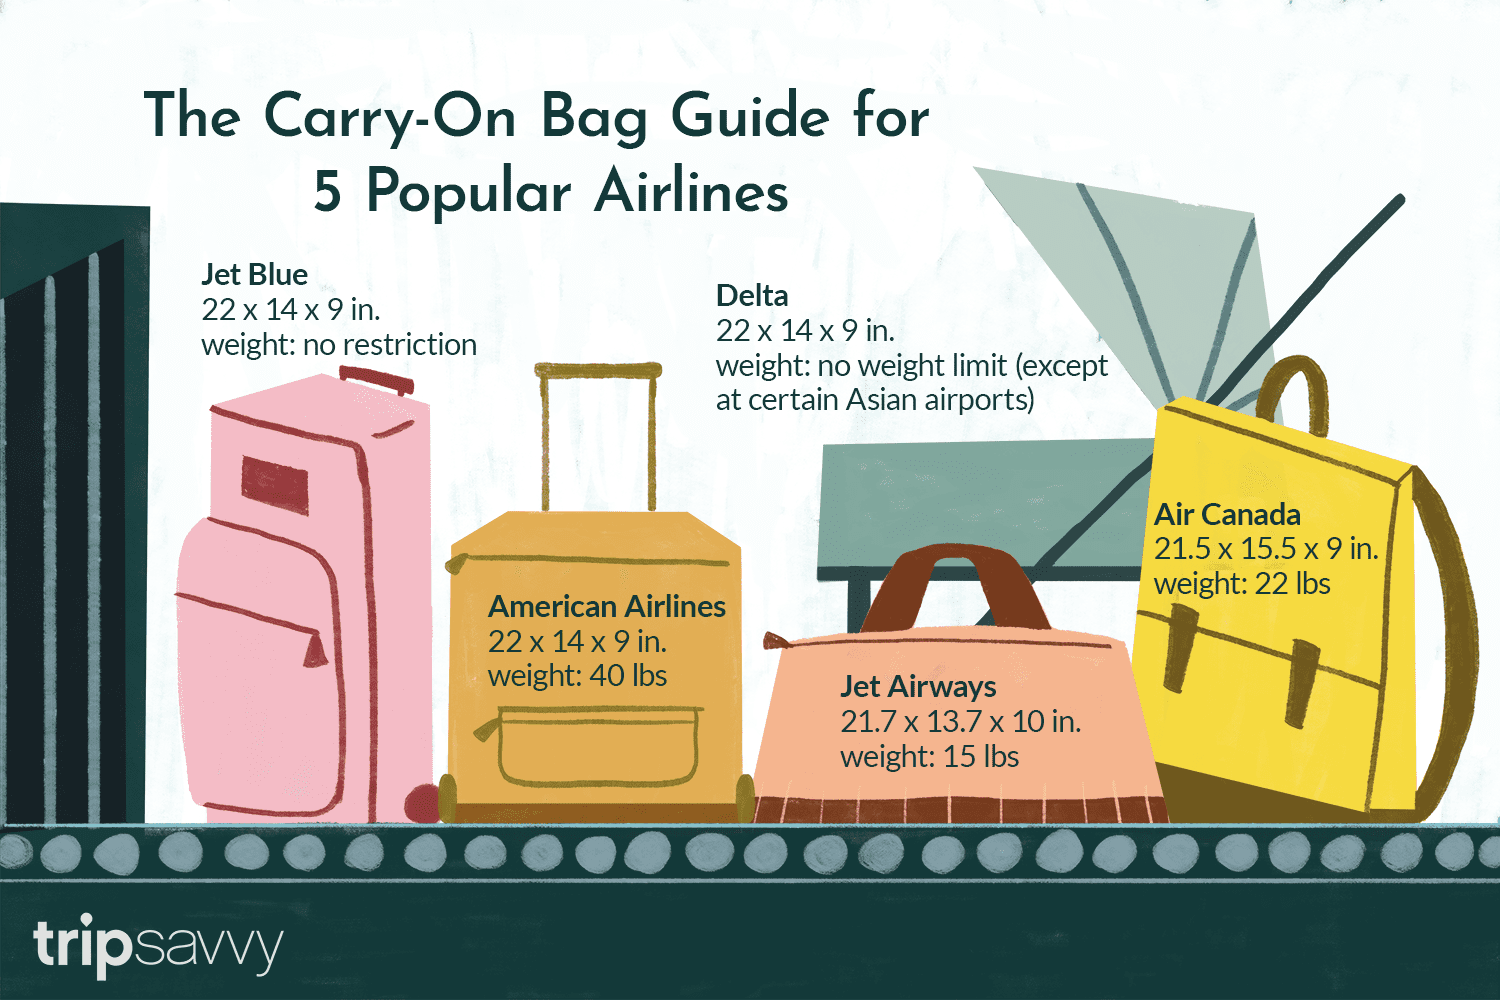 CarryOn Bags Size and Weight Limits and Allowances